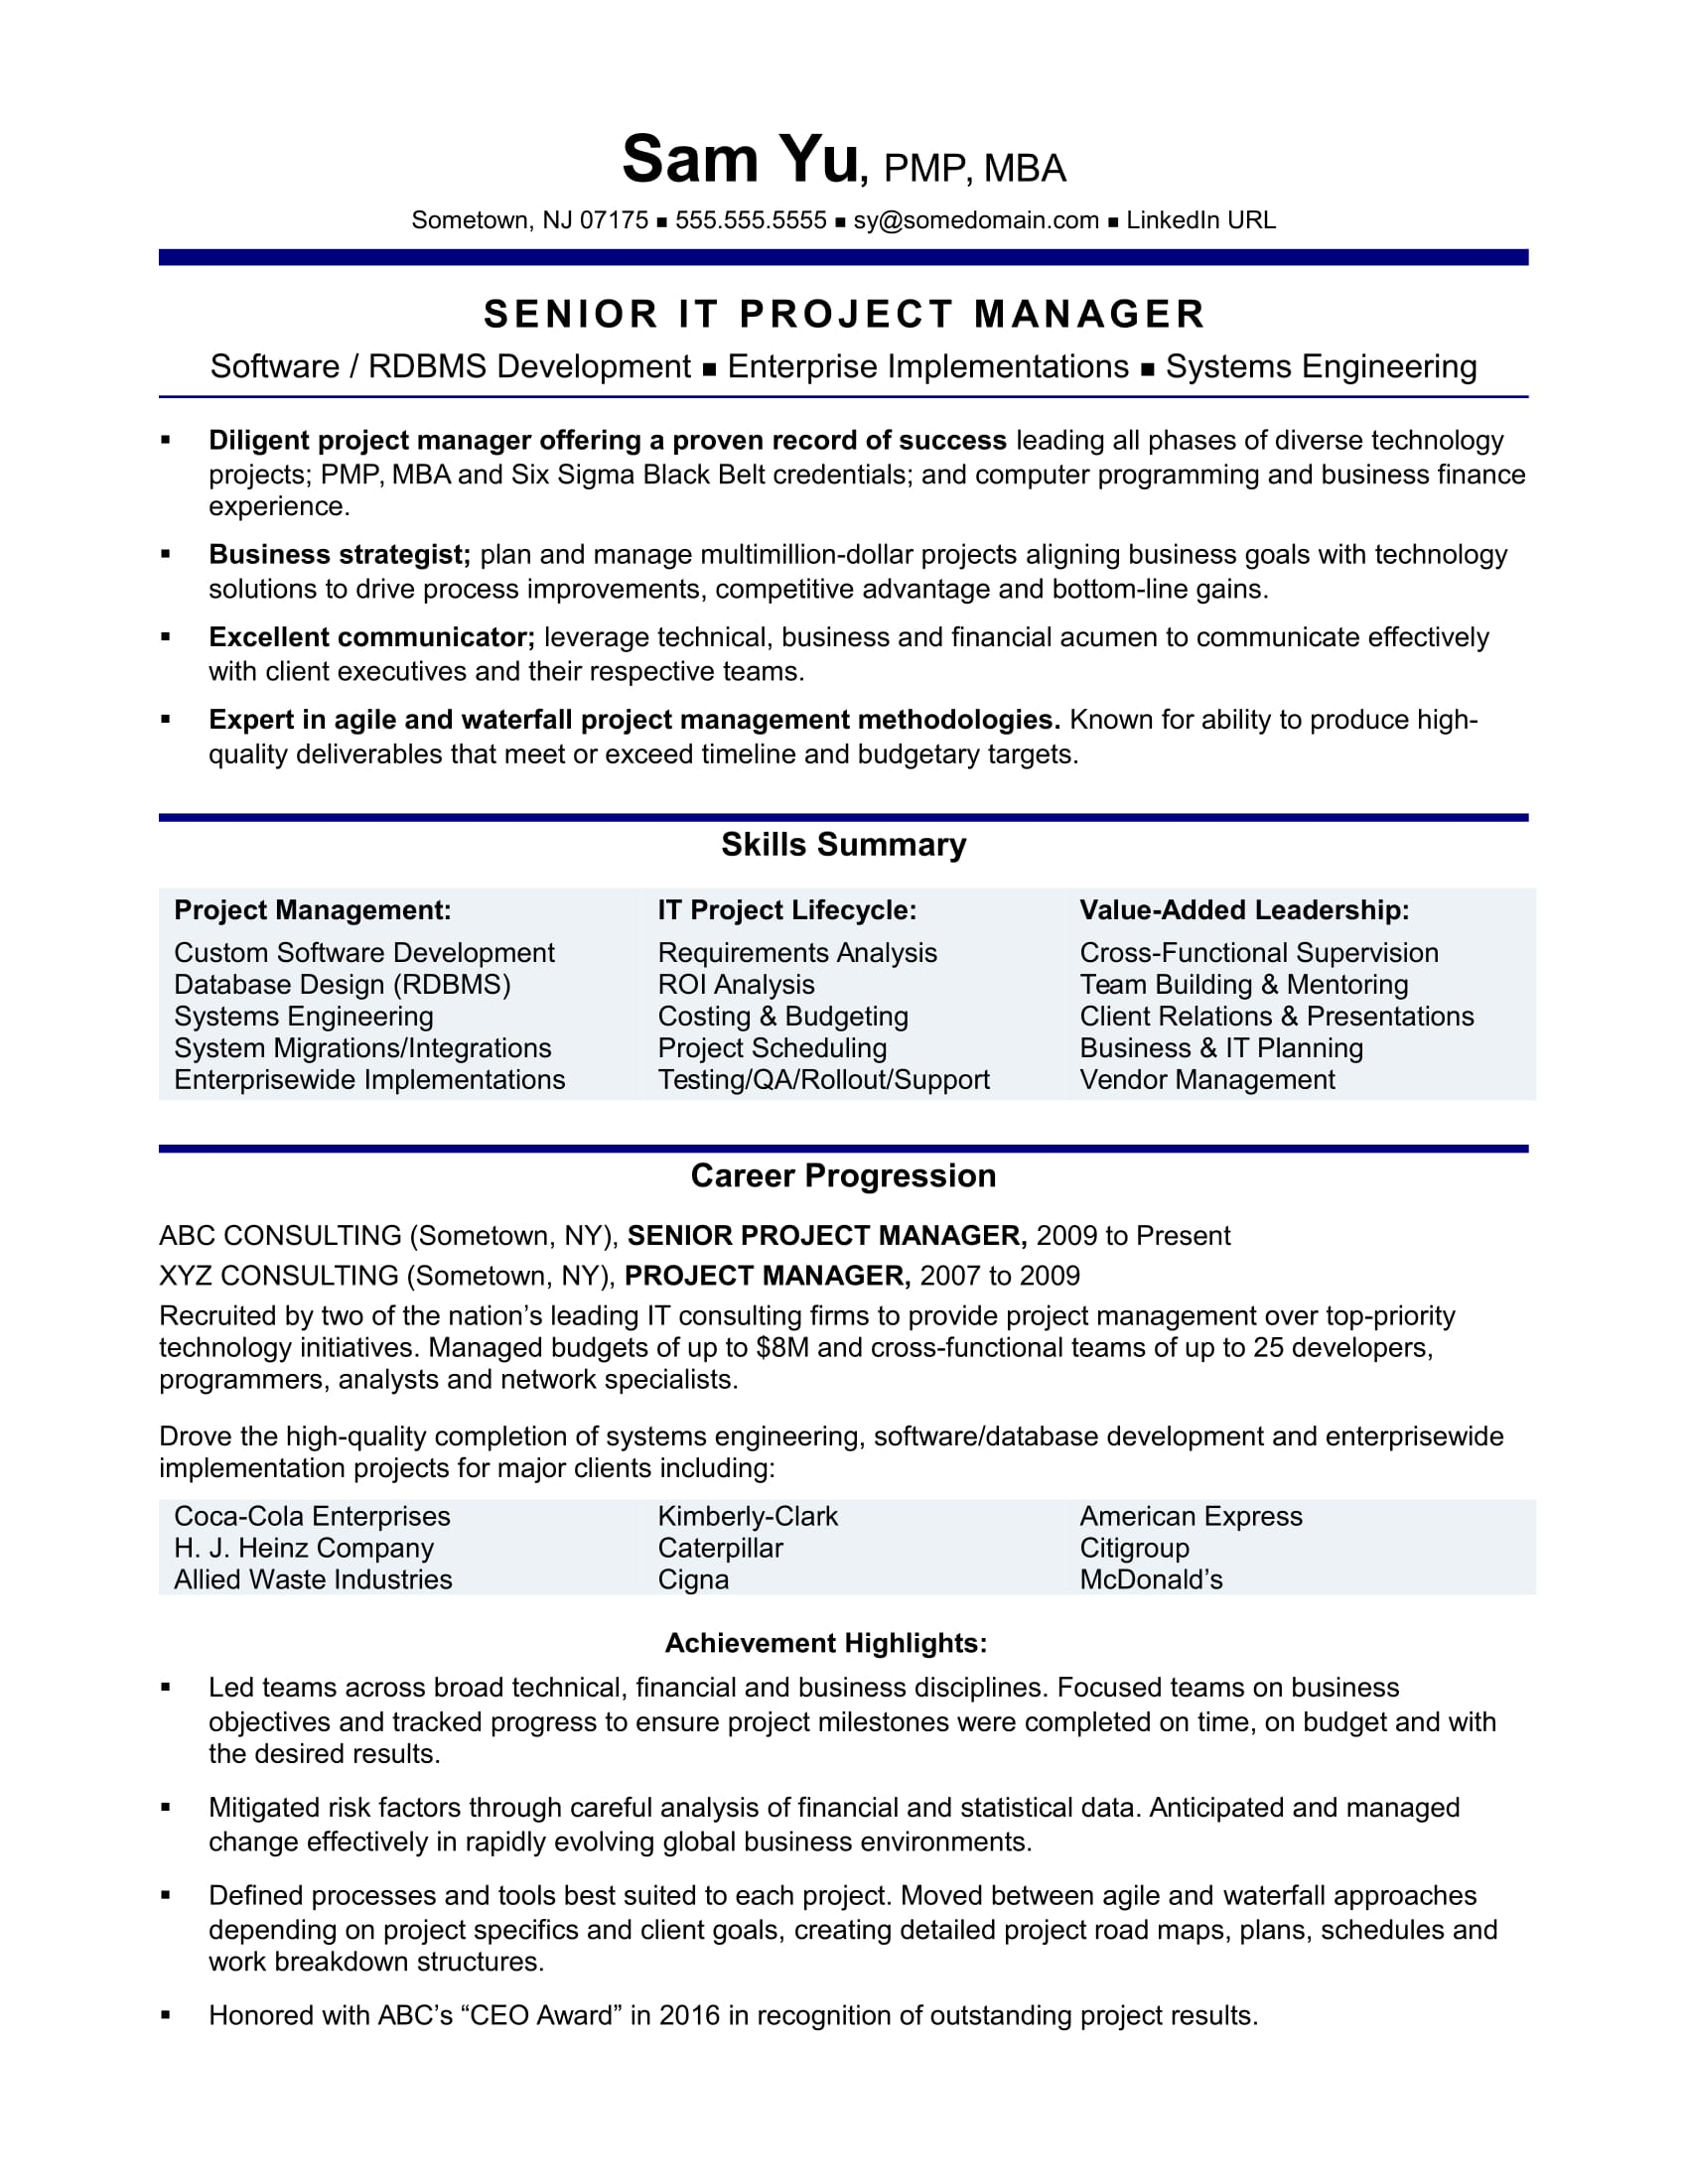 Software Professional Resume Samples Experienced It Project Manager Resume Sample Monster